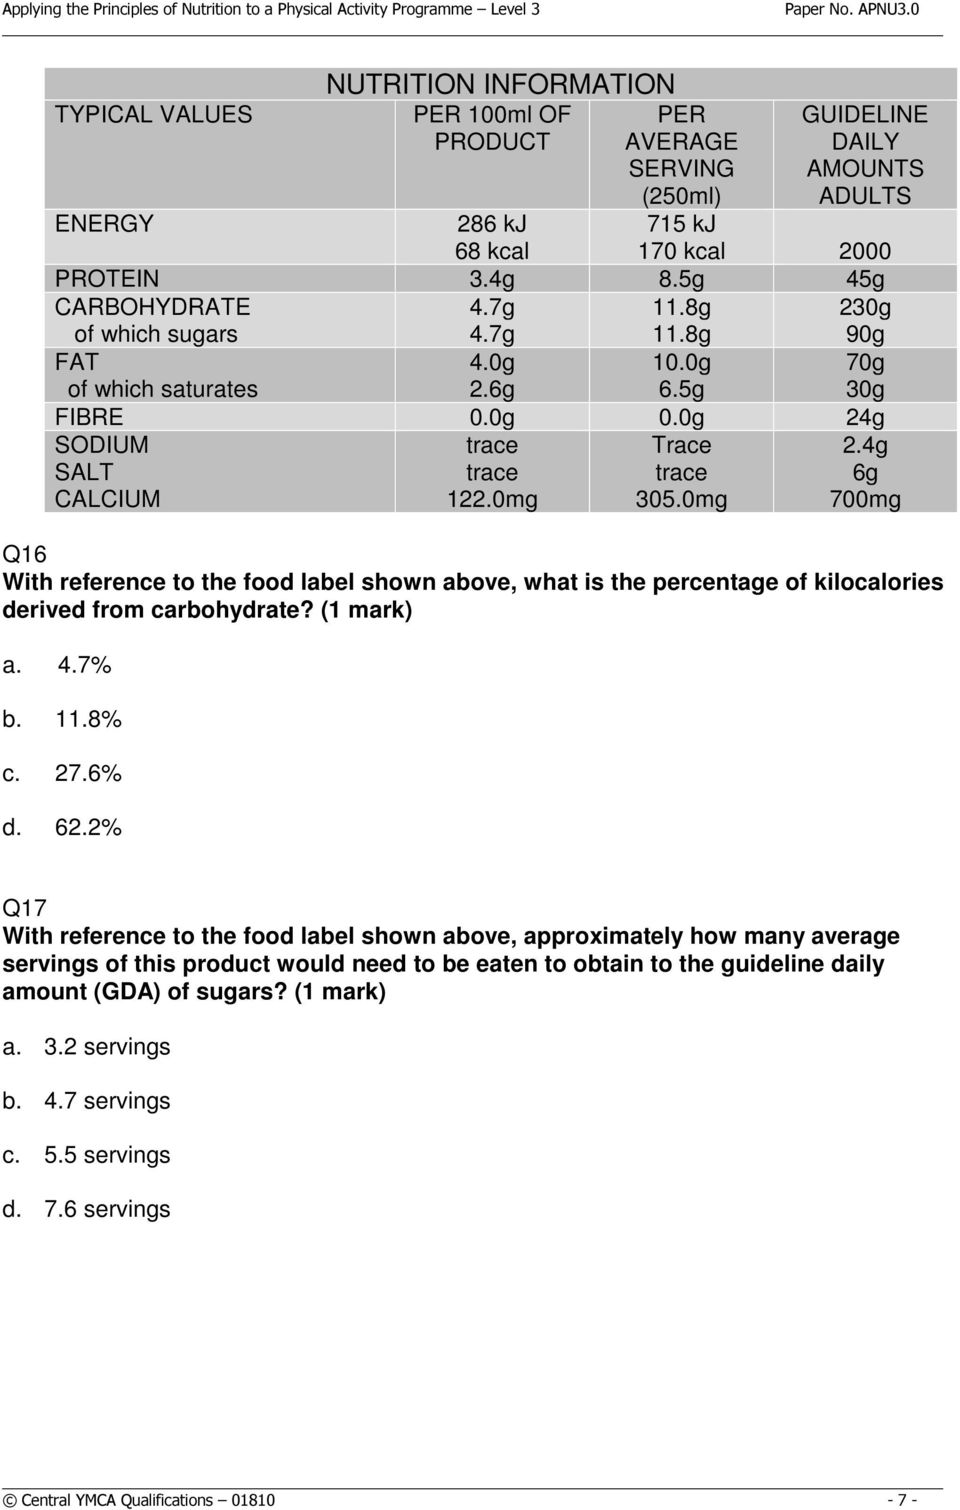 0mg 2.4g 6g 700mg Q16 With reference to the food label shown above, what is the percentage of kilocalories derived from carbohydrate? a. 4.7% b. 11.8% c. 27.6% d. 62.